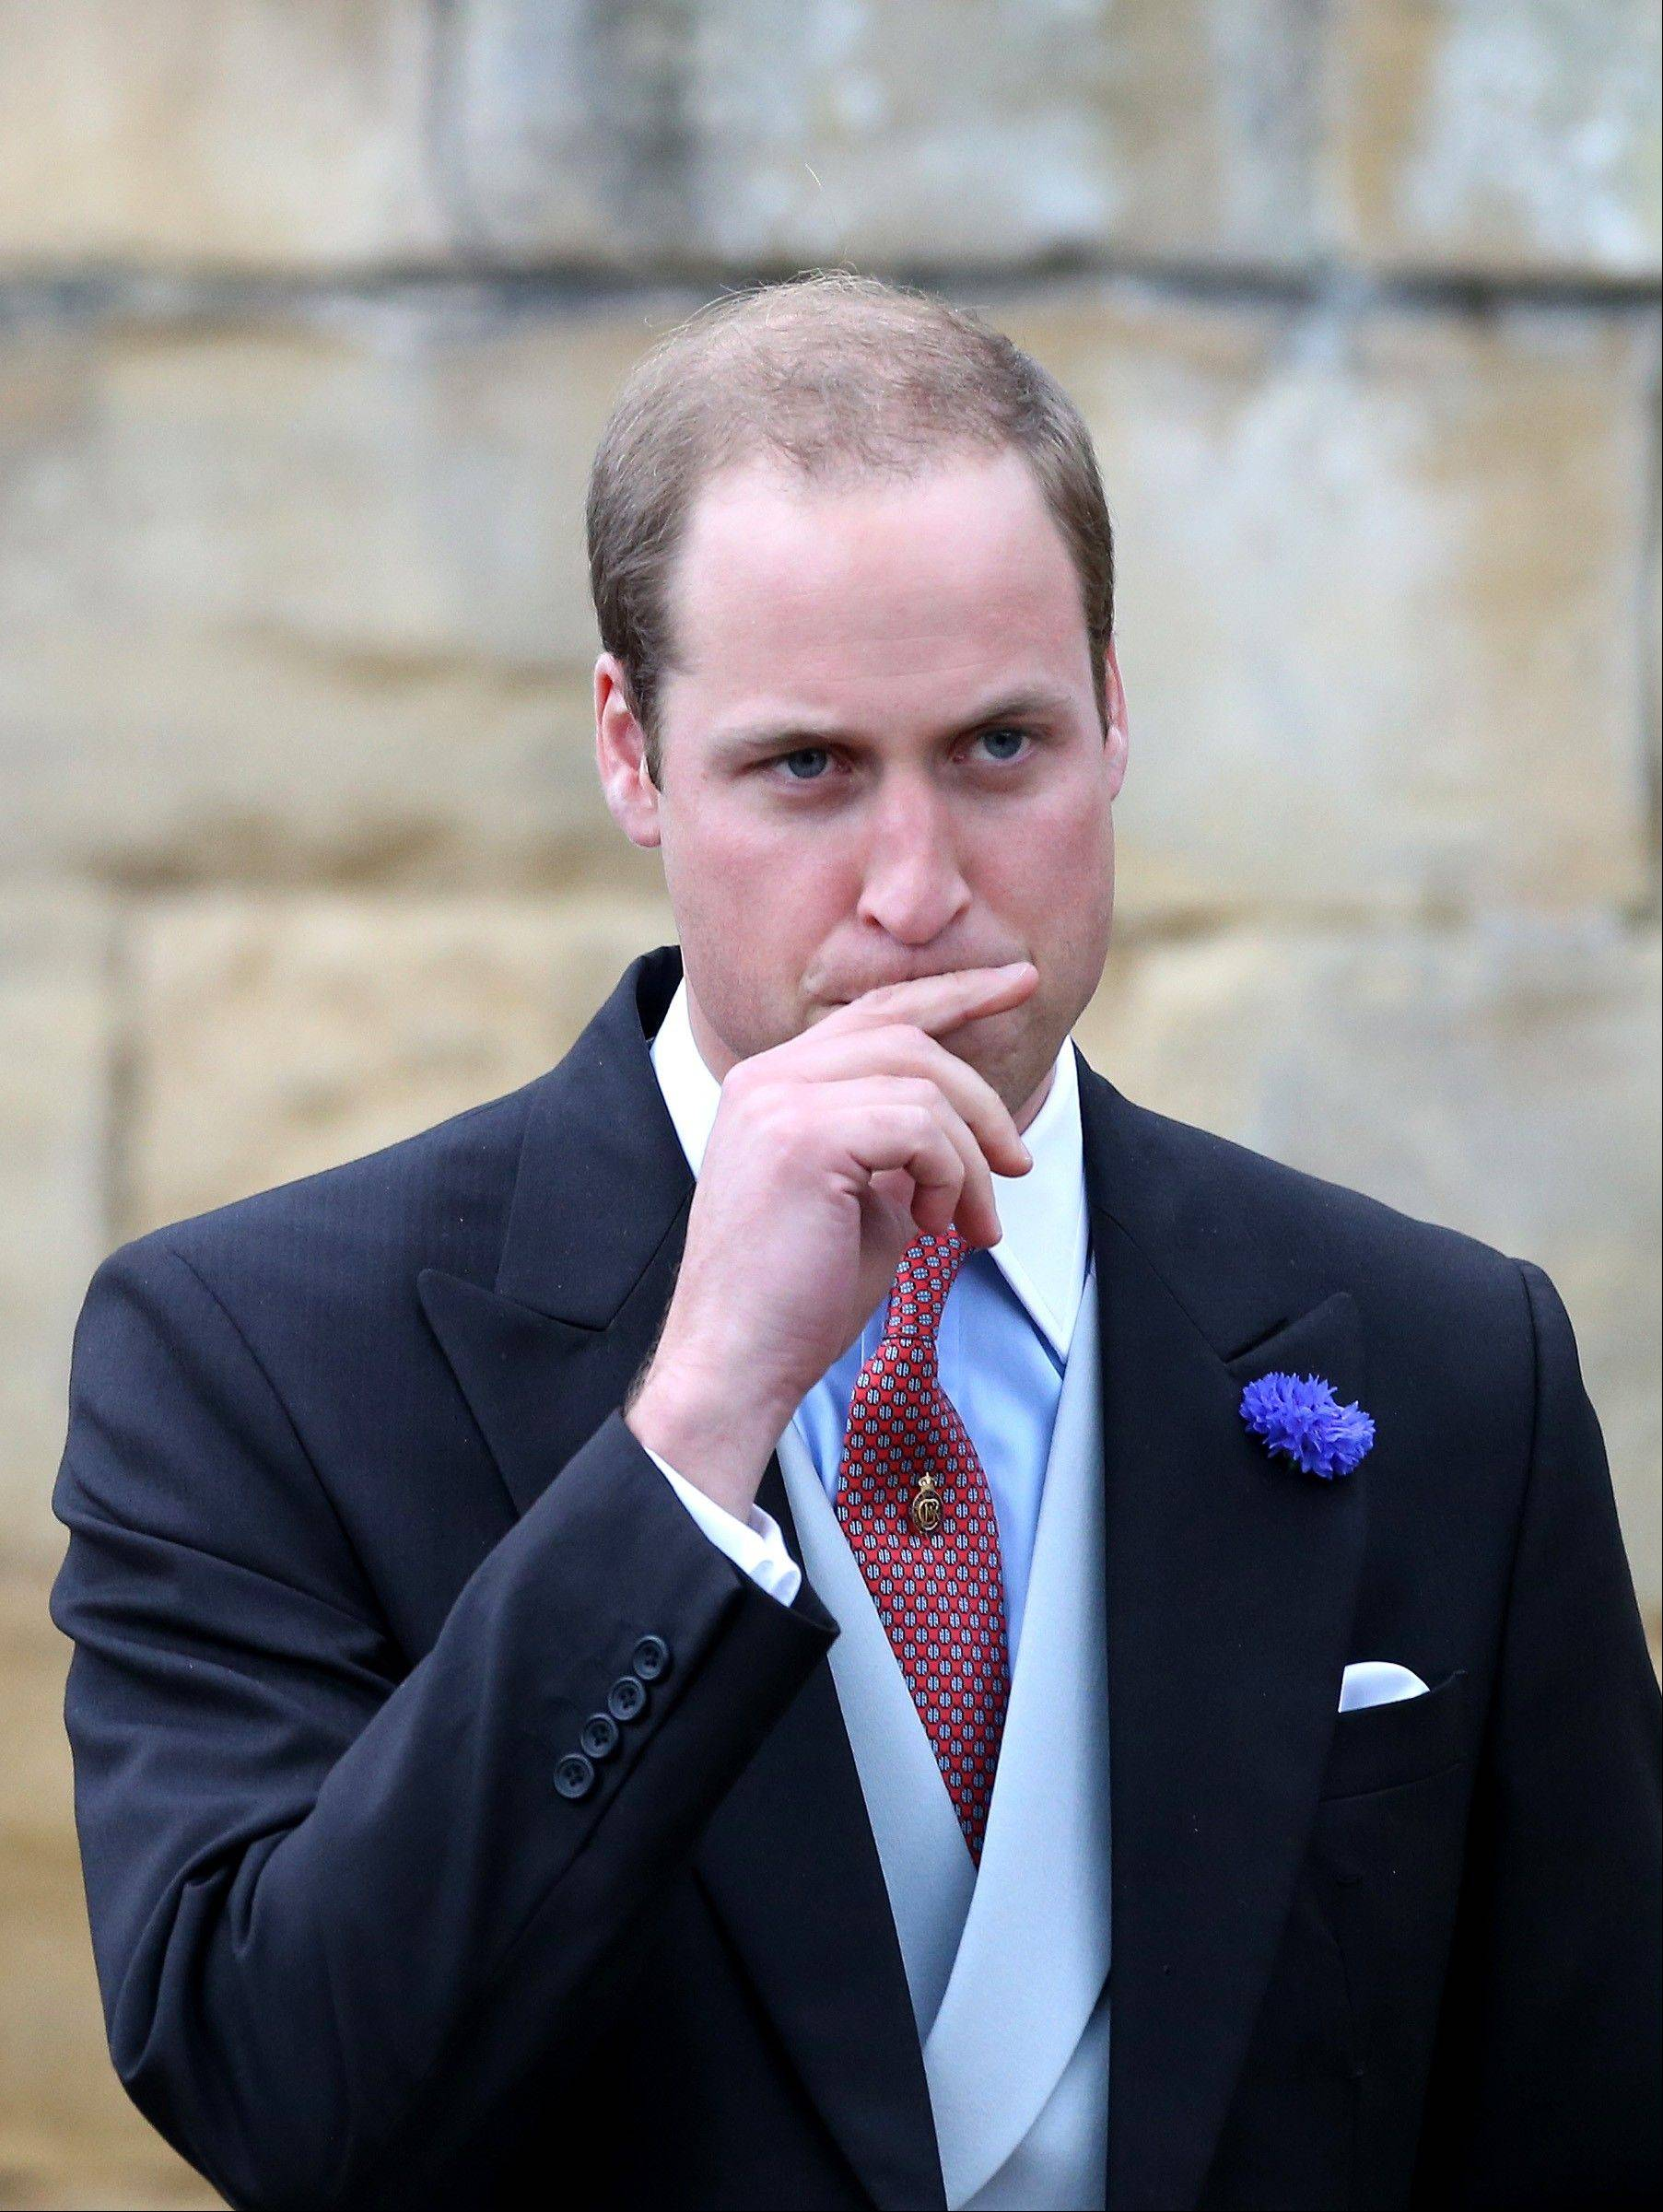 Britain�s Prince William leaves after attending the wedding of the Duke and Duchess of Northumberland�s daughter Lady Melissa Percy to chartered surveyor Thomas van Straubenzee at St Michael�s Church in Alnwick, England, Saturday, June 22, 2013.